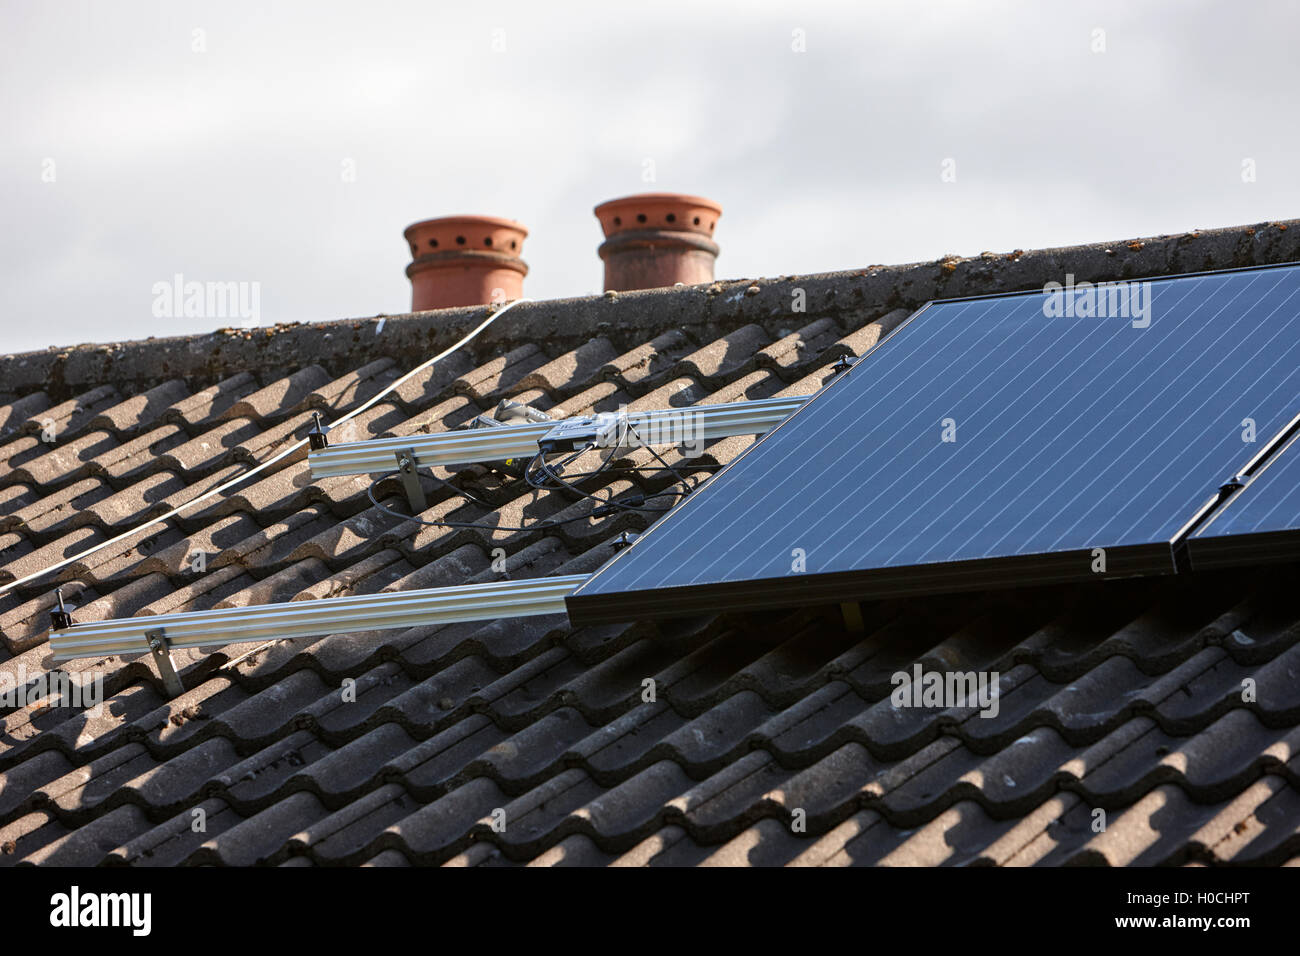 mounting system and micro inverters in a domestic solar panel installation in the uk - Stock Image